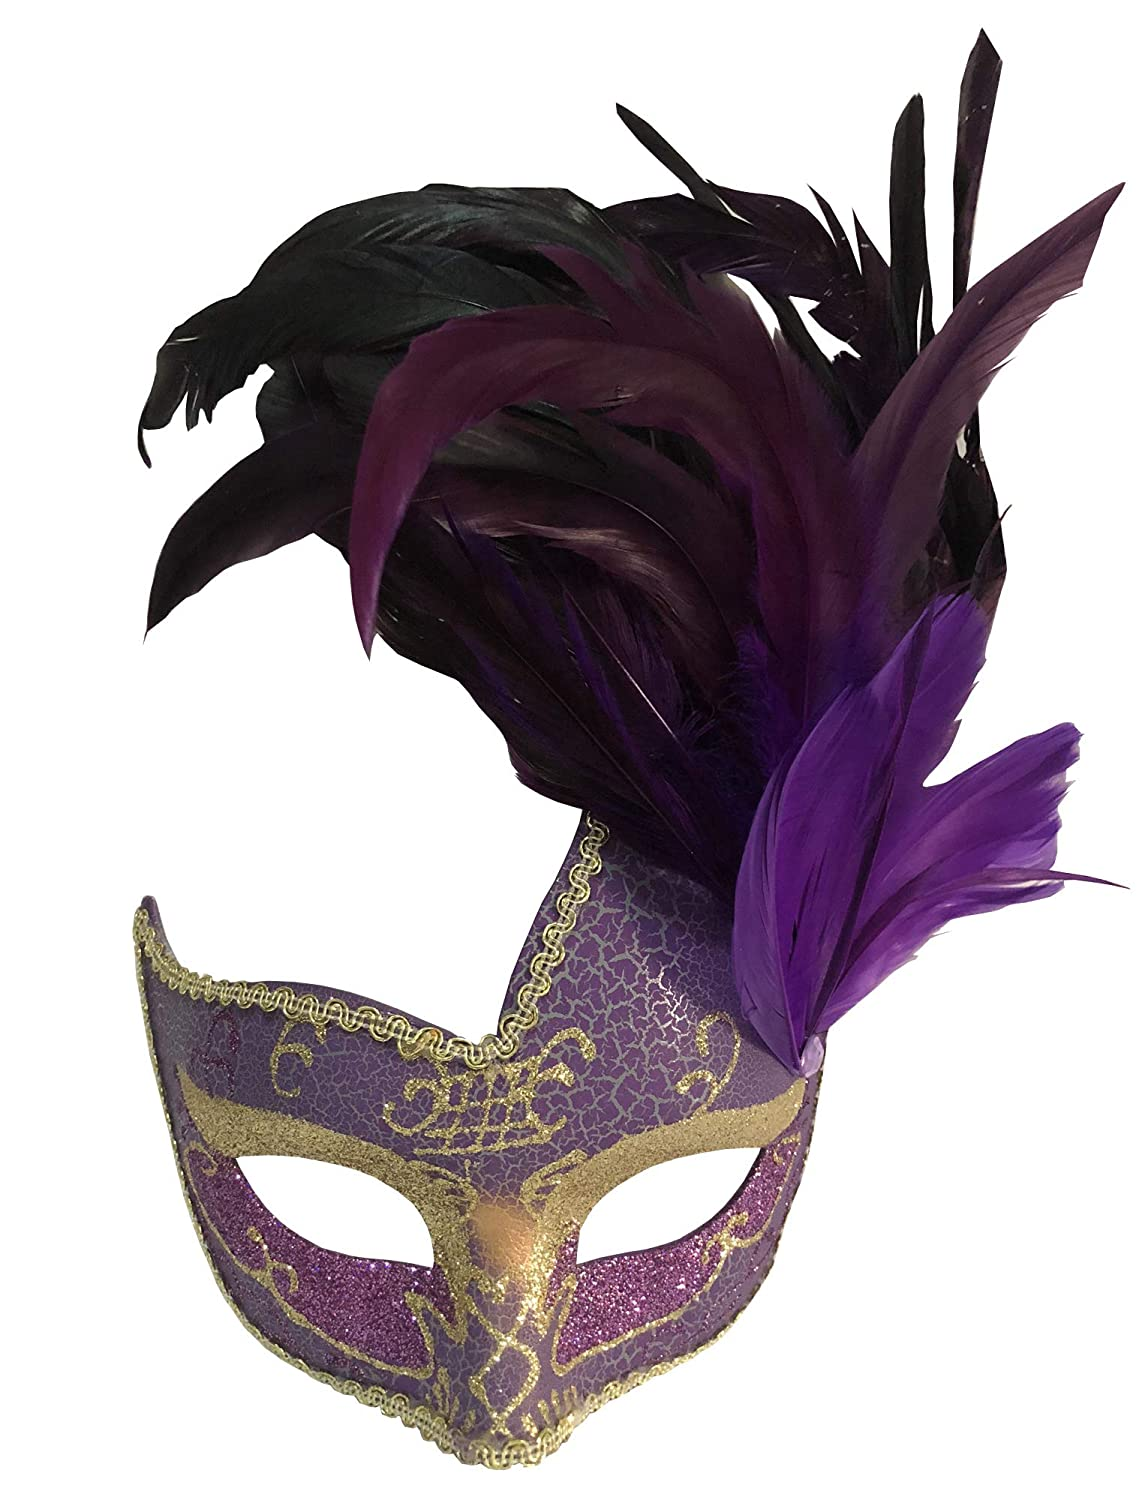 1bcd62c769ff4 Amazon.com: Sheliky Costume Mask Feather Masquerade Mask Halloween Mardi  Gras Cosplay Party Masque (Purple): Toys & Games